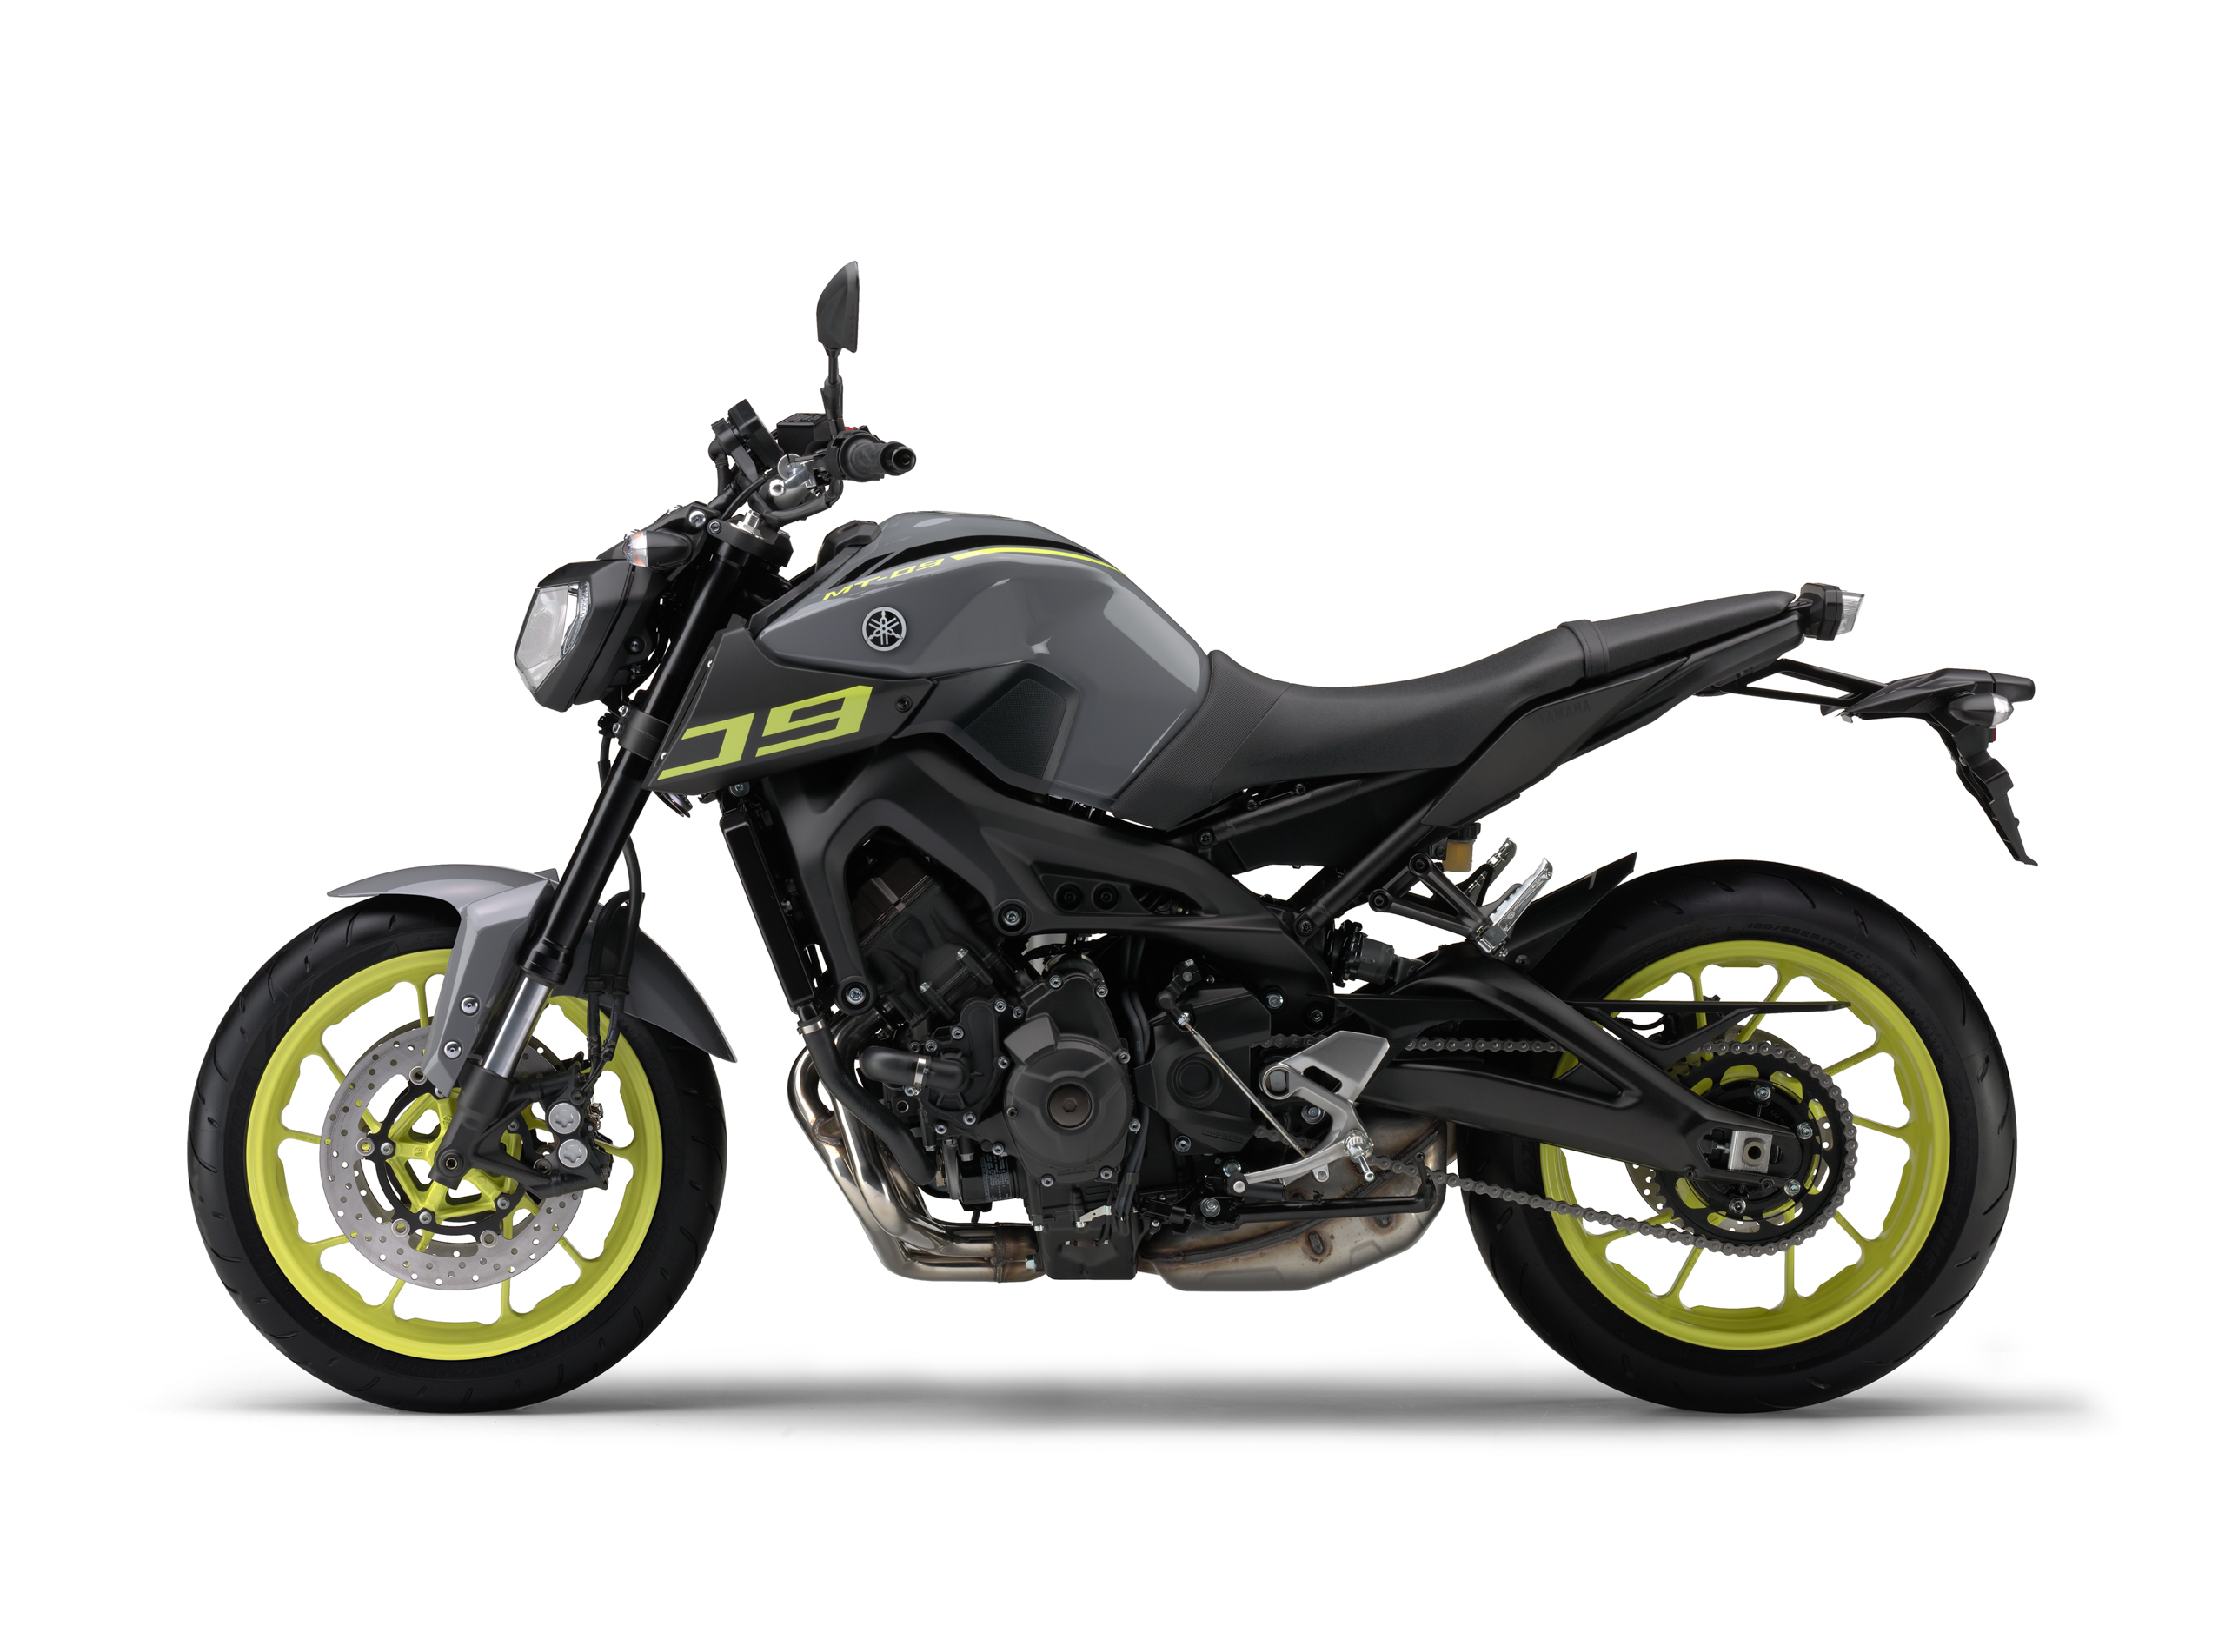 2016 yamaha mt 09 in malaysia new colours rm45k image 448732. Black Bedroom Furniture Sets. Home Design Ideas